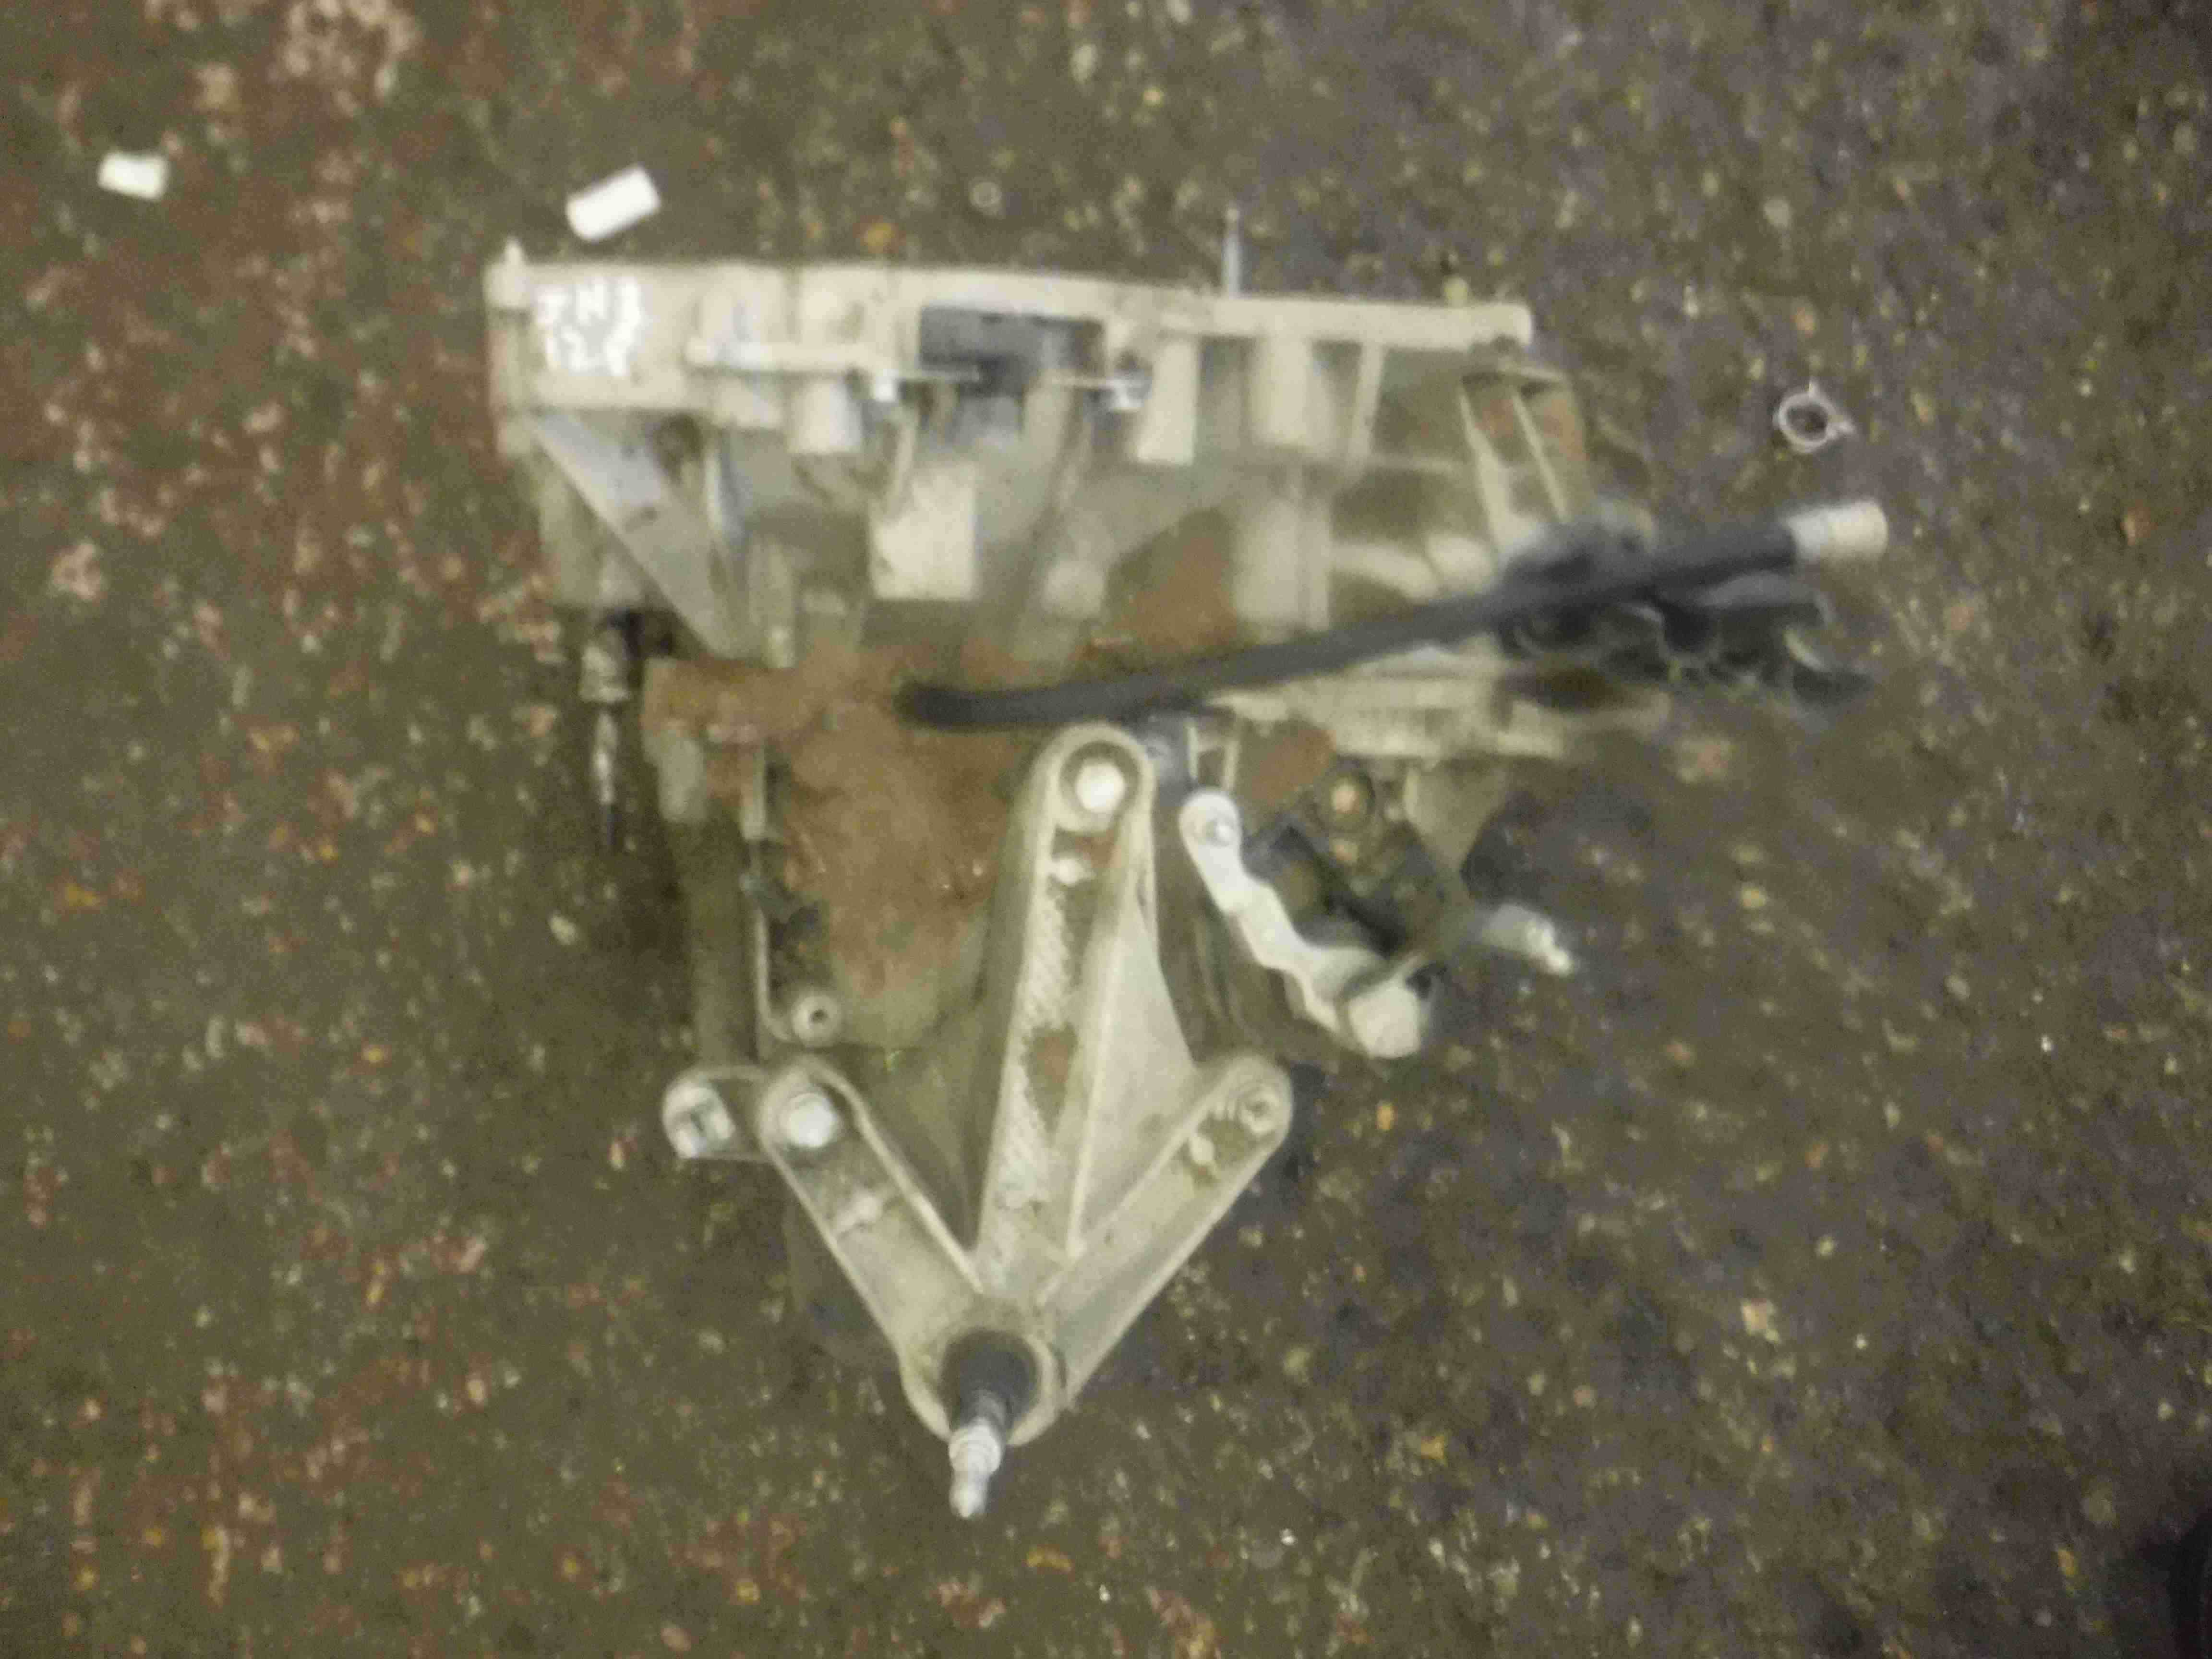 Renault Clio MK3 2005-2012 1.2 16v Gearbox JH3 128 JH3128